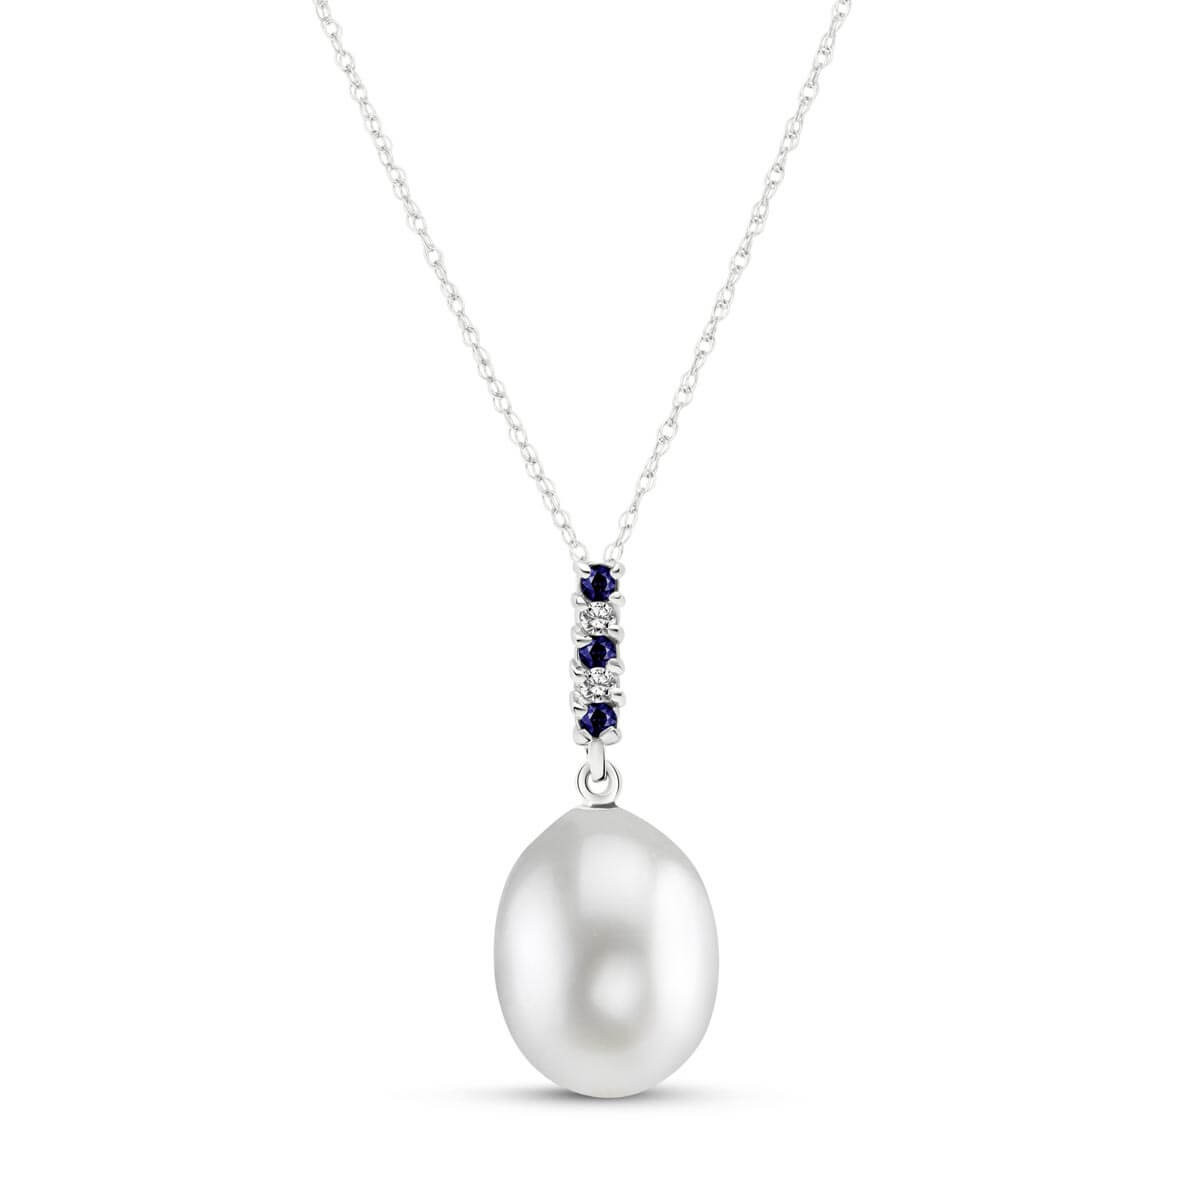 Pearl & Sapphire Pendant Necklace in 9ct White Gold